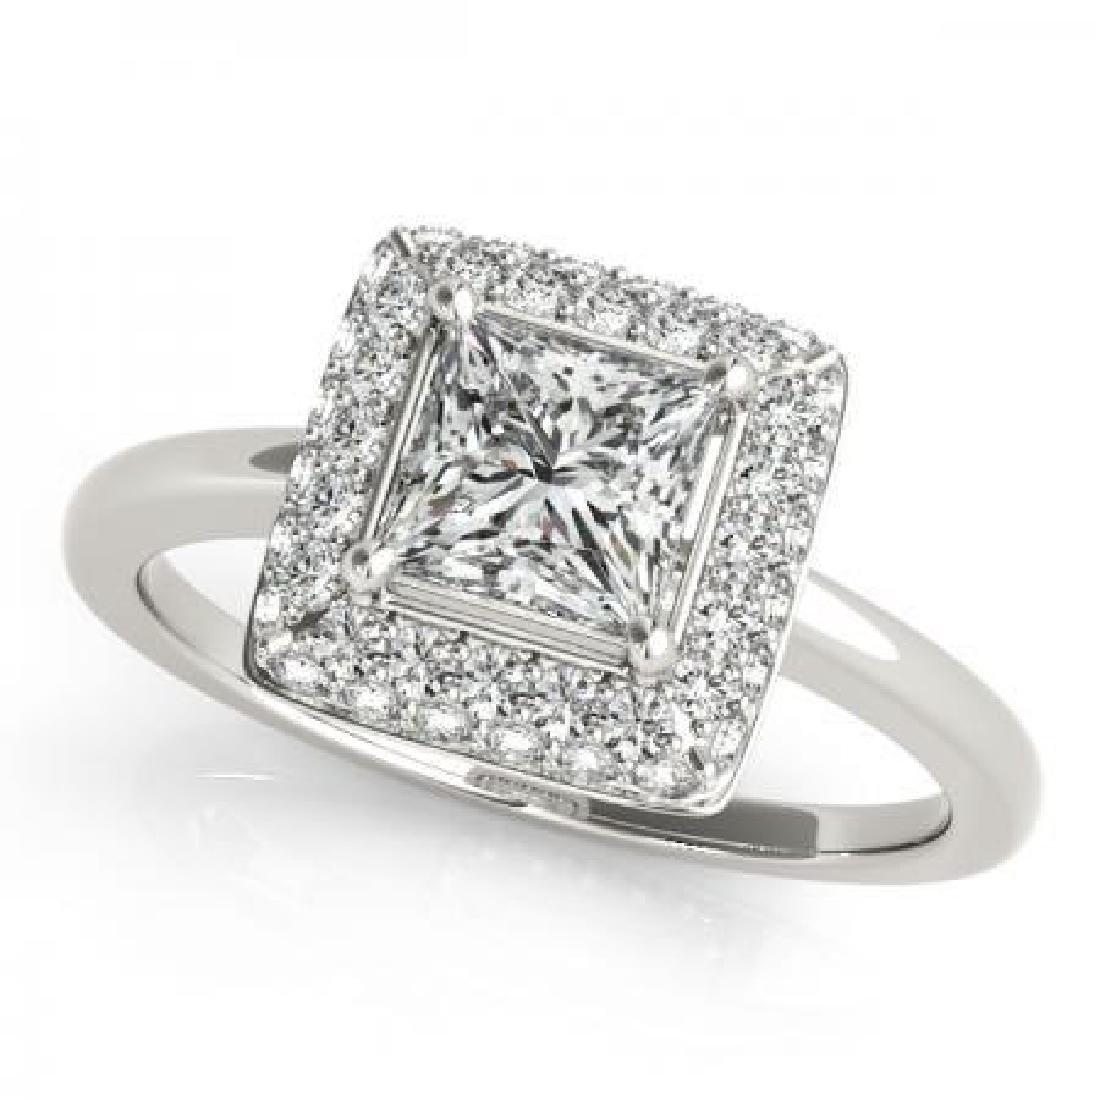 CERTIFIED PLATINUM 1.22 CT G-H/VS-SI1 DIAMOND HALO ENGA